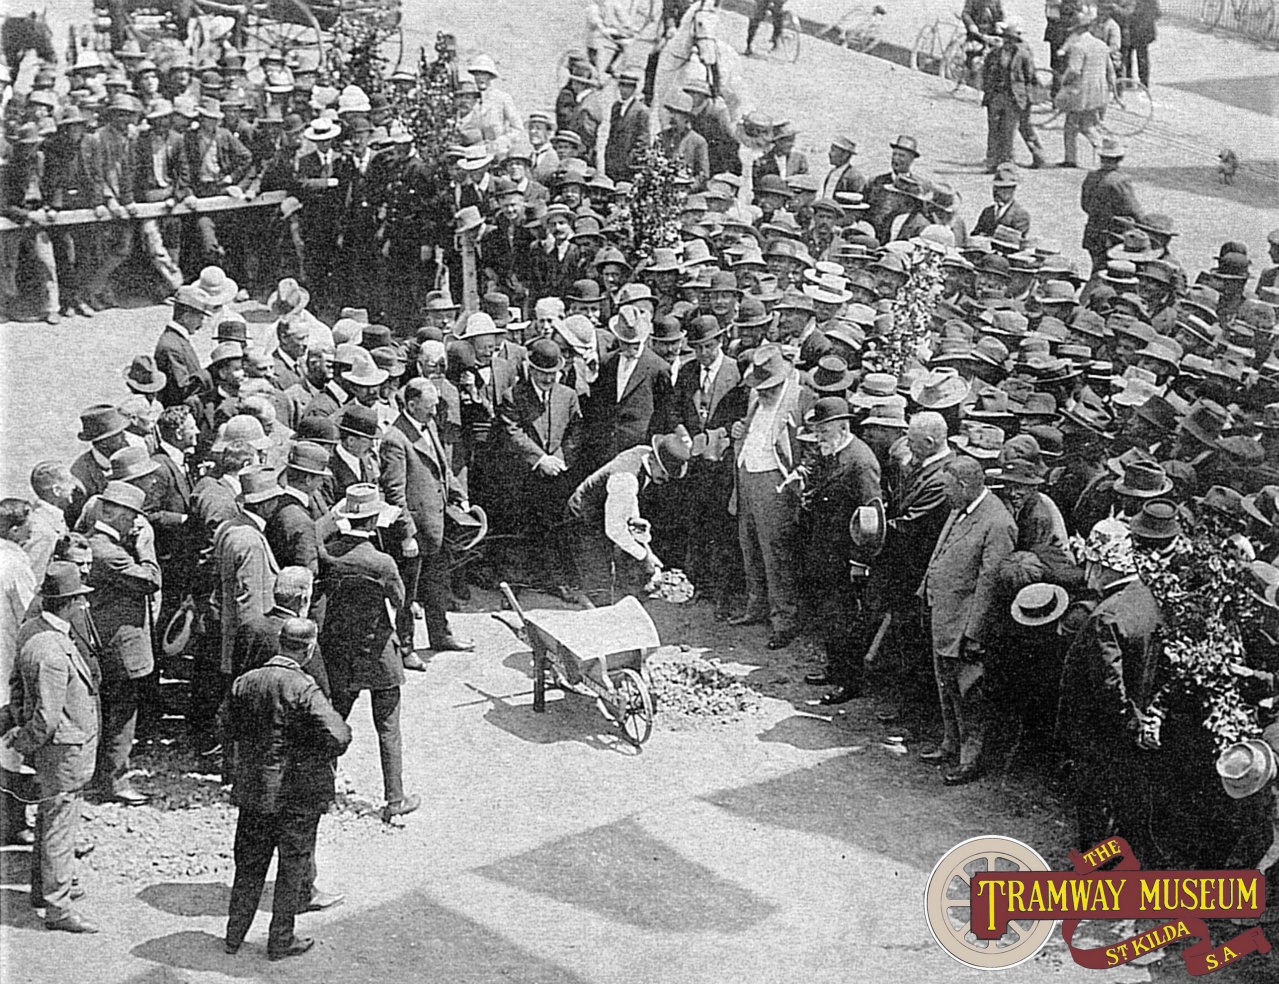 Turning of the first sod at the start of the construction of the new electric tramway system in 1908.